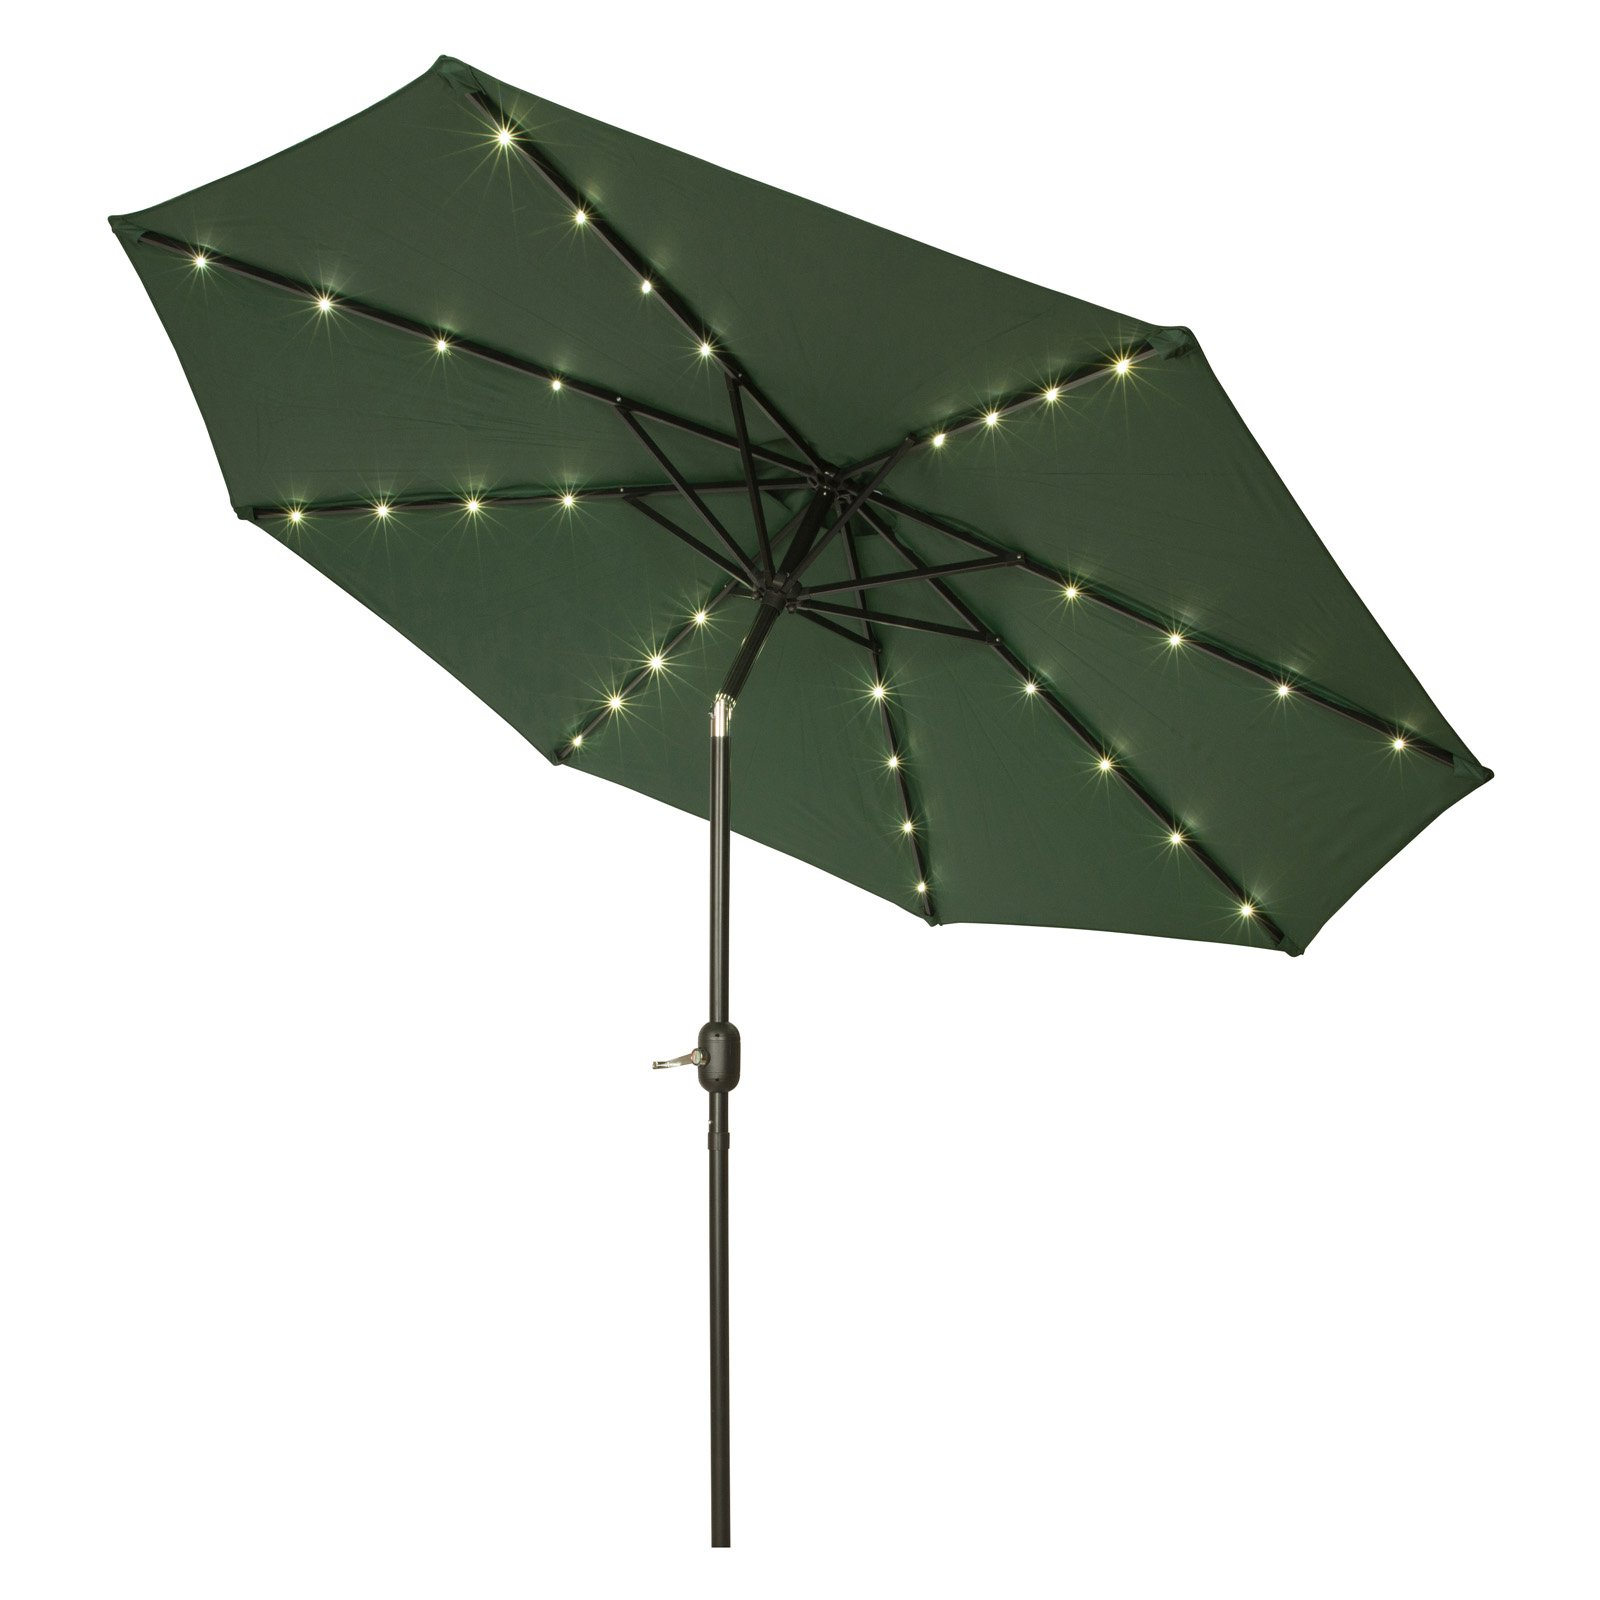 Woll Lighted Market Umbrellas Within Most Recently Released 9' Deluxe Solar Powered Led Lighted Patio Umbrella, Tan (View 18 of 20)